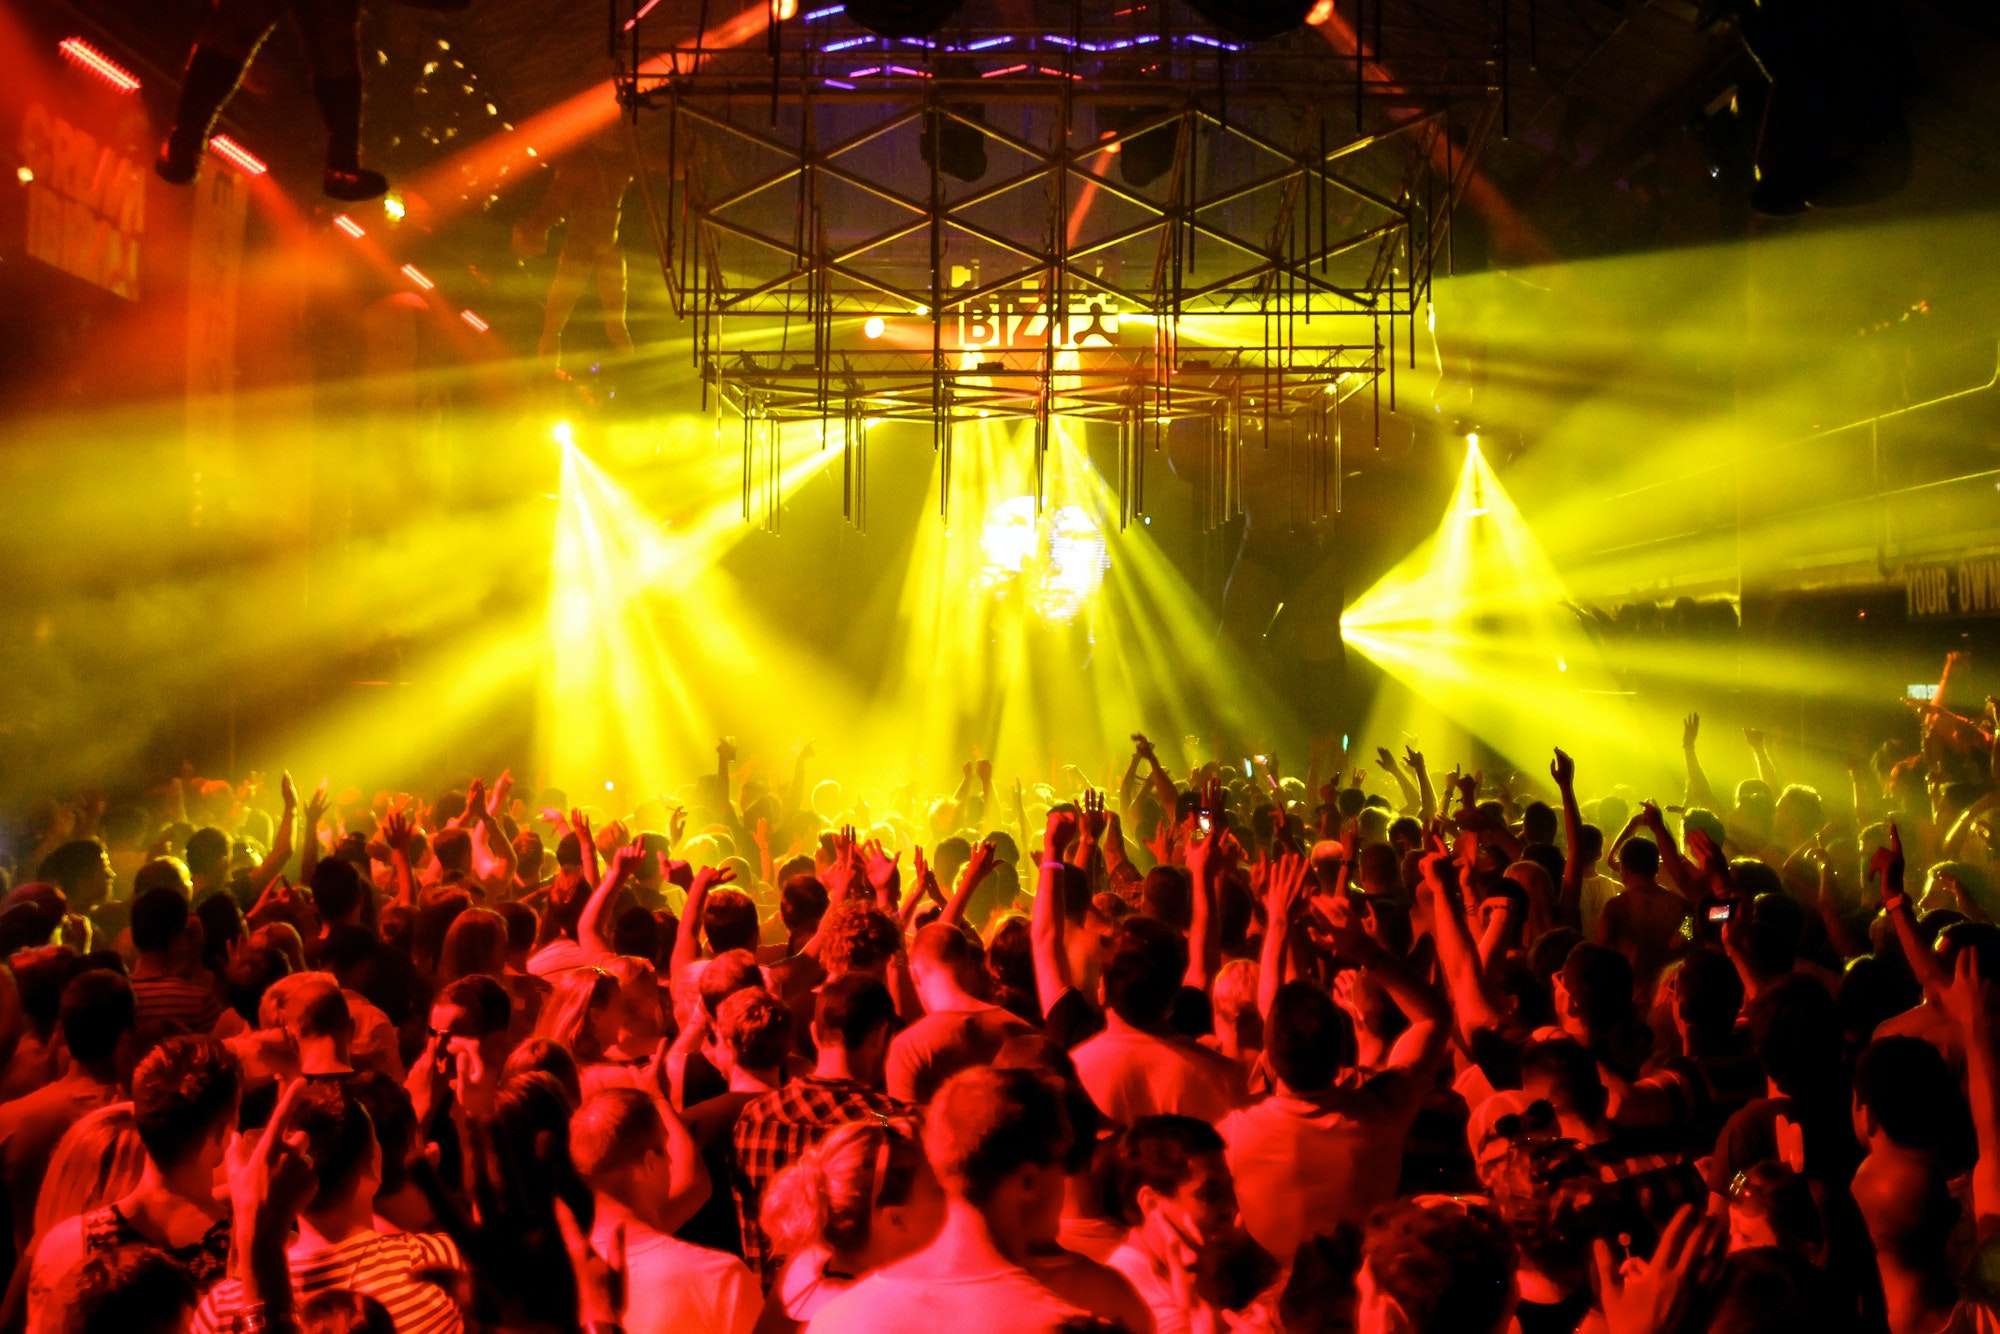 Why Ibiza club music at a classical concert is a clash we should embrace